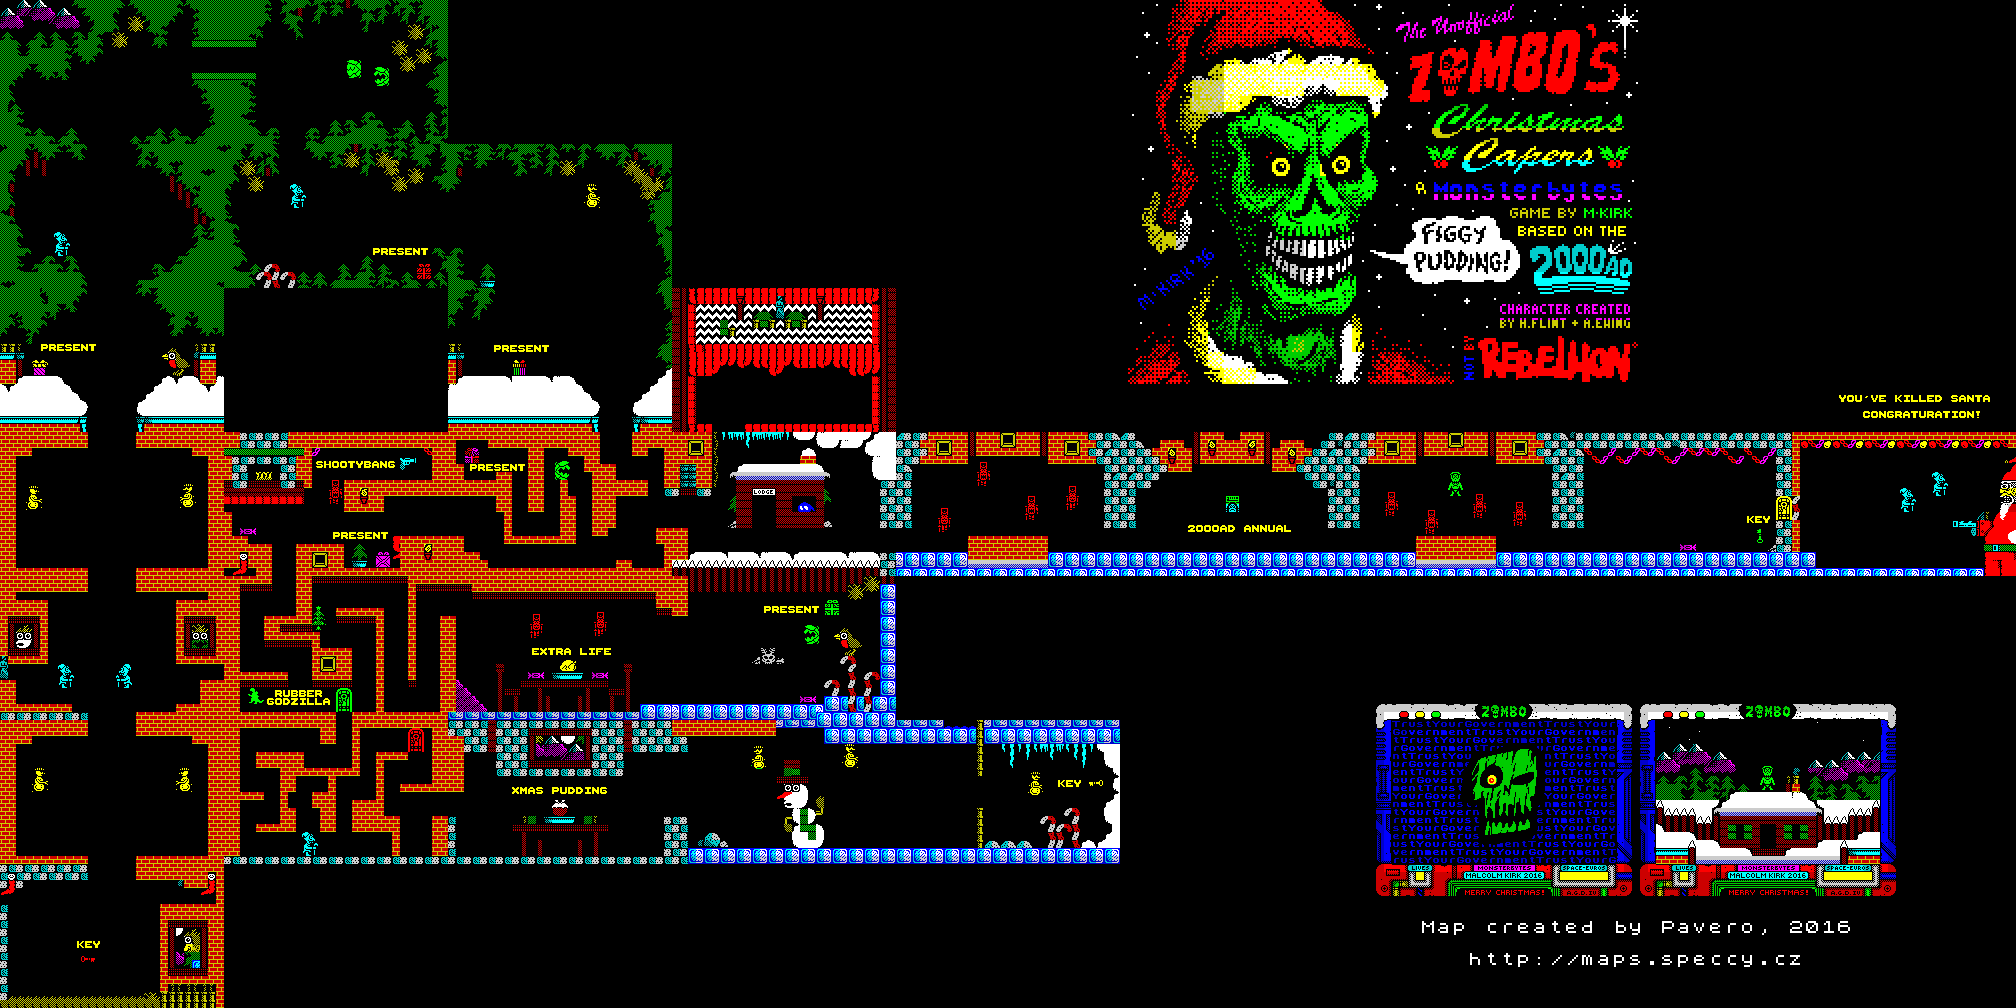 Unofficial Zombo's Christmas Capers - The Map